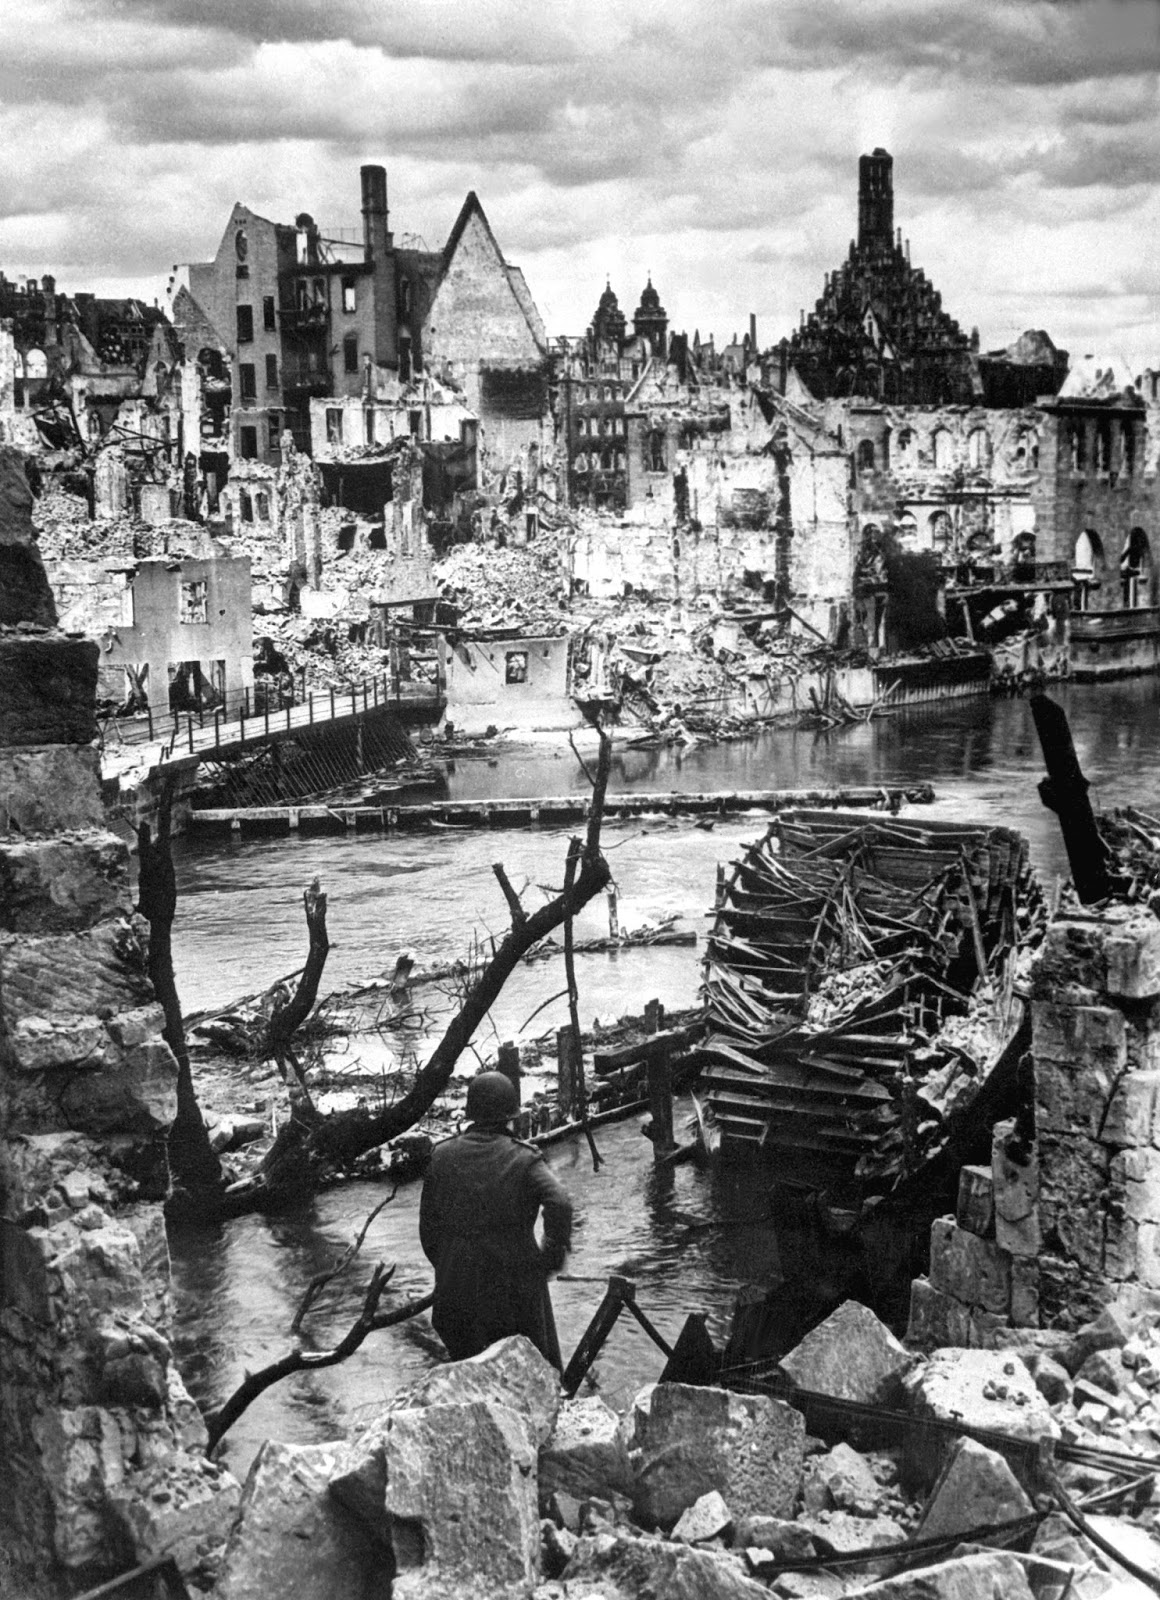 Nuremberg_in_Ruins_1945_HD-SN-99-02986